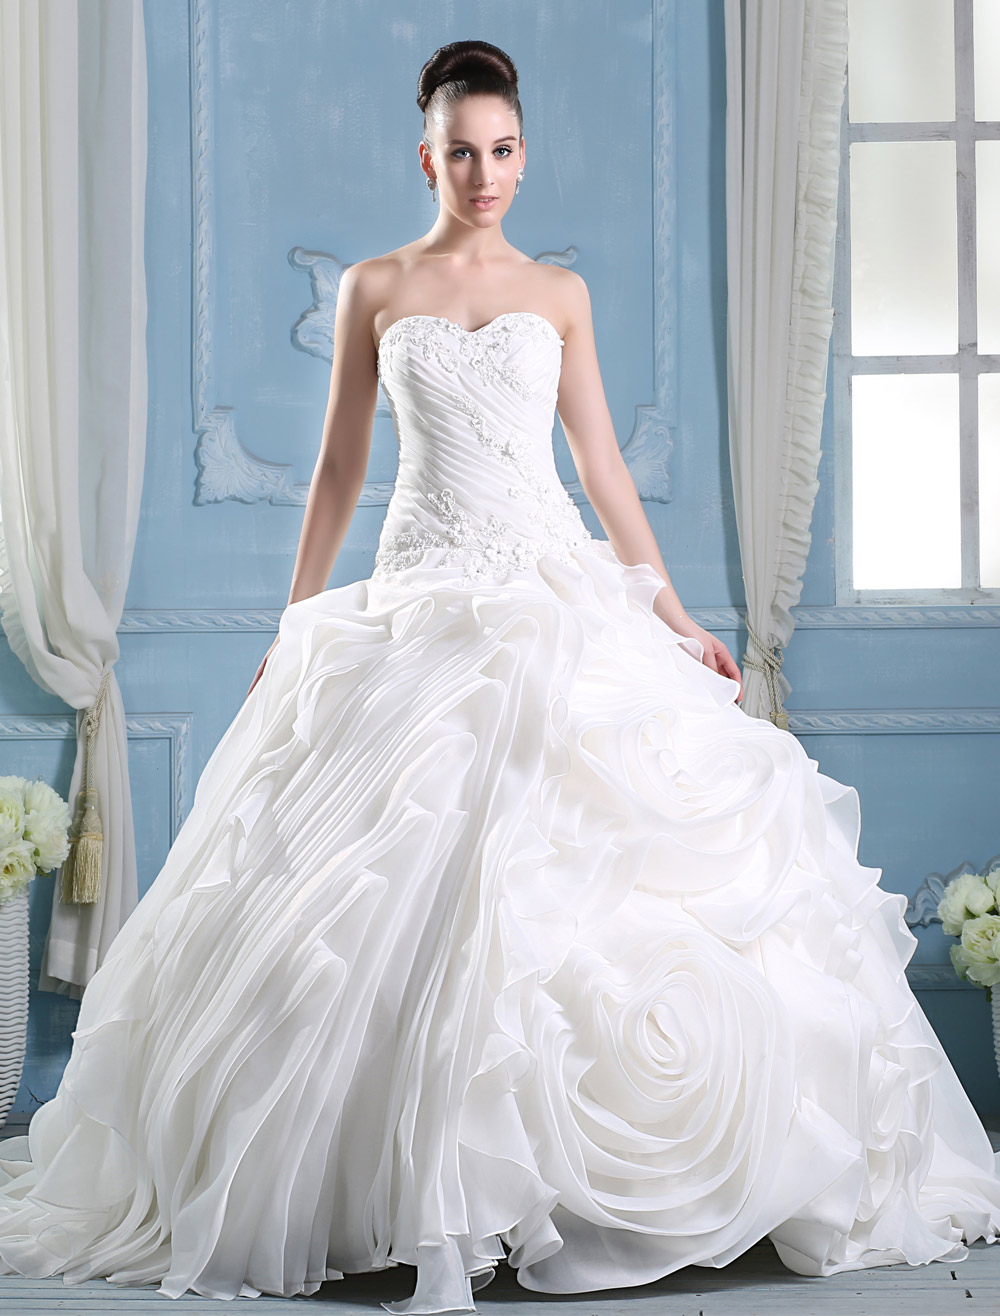 Ivory Sweetheart Neck A-line Strapless Flower Wedding Dress